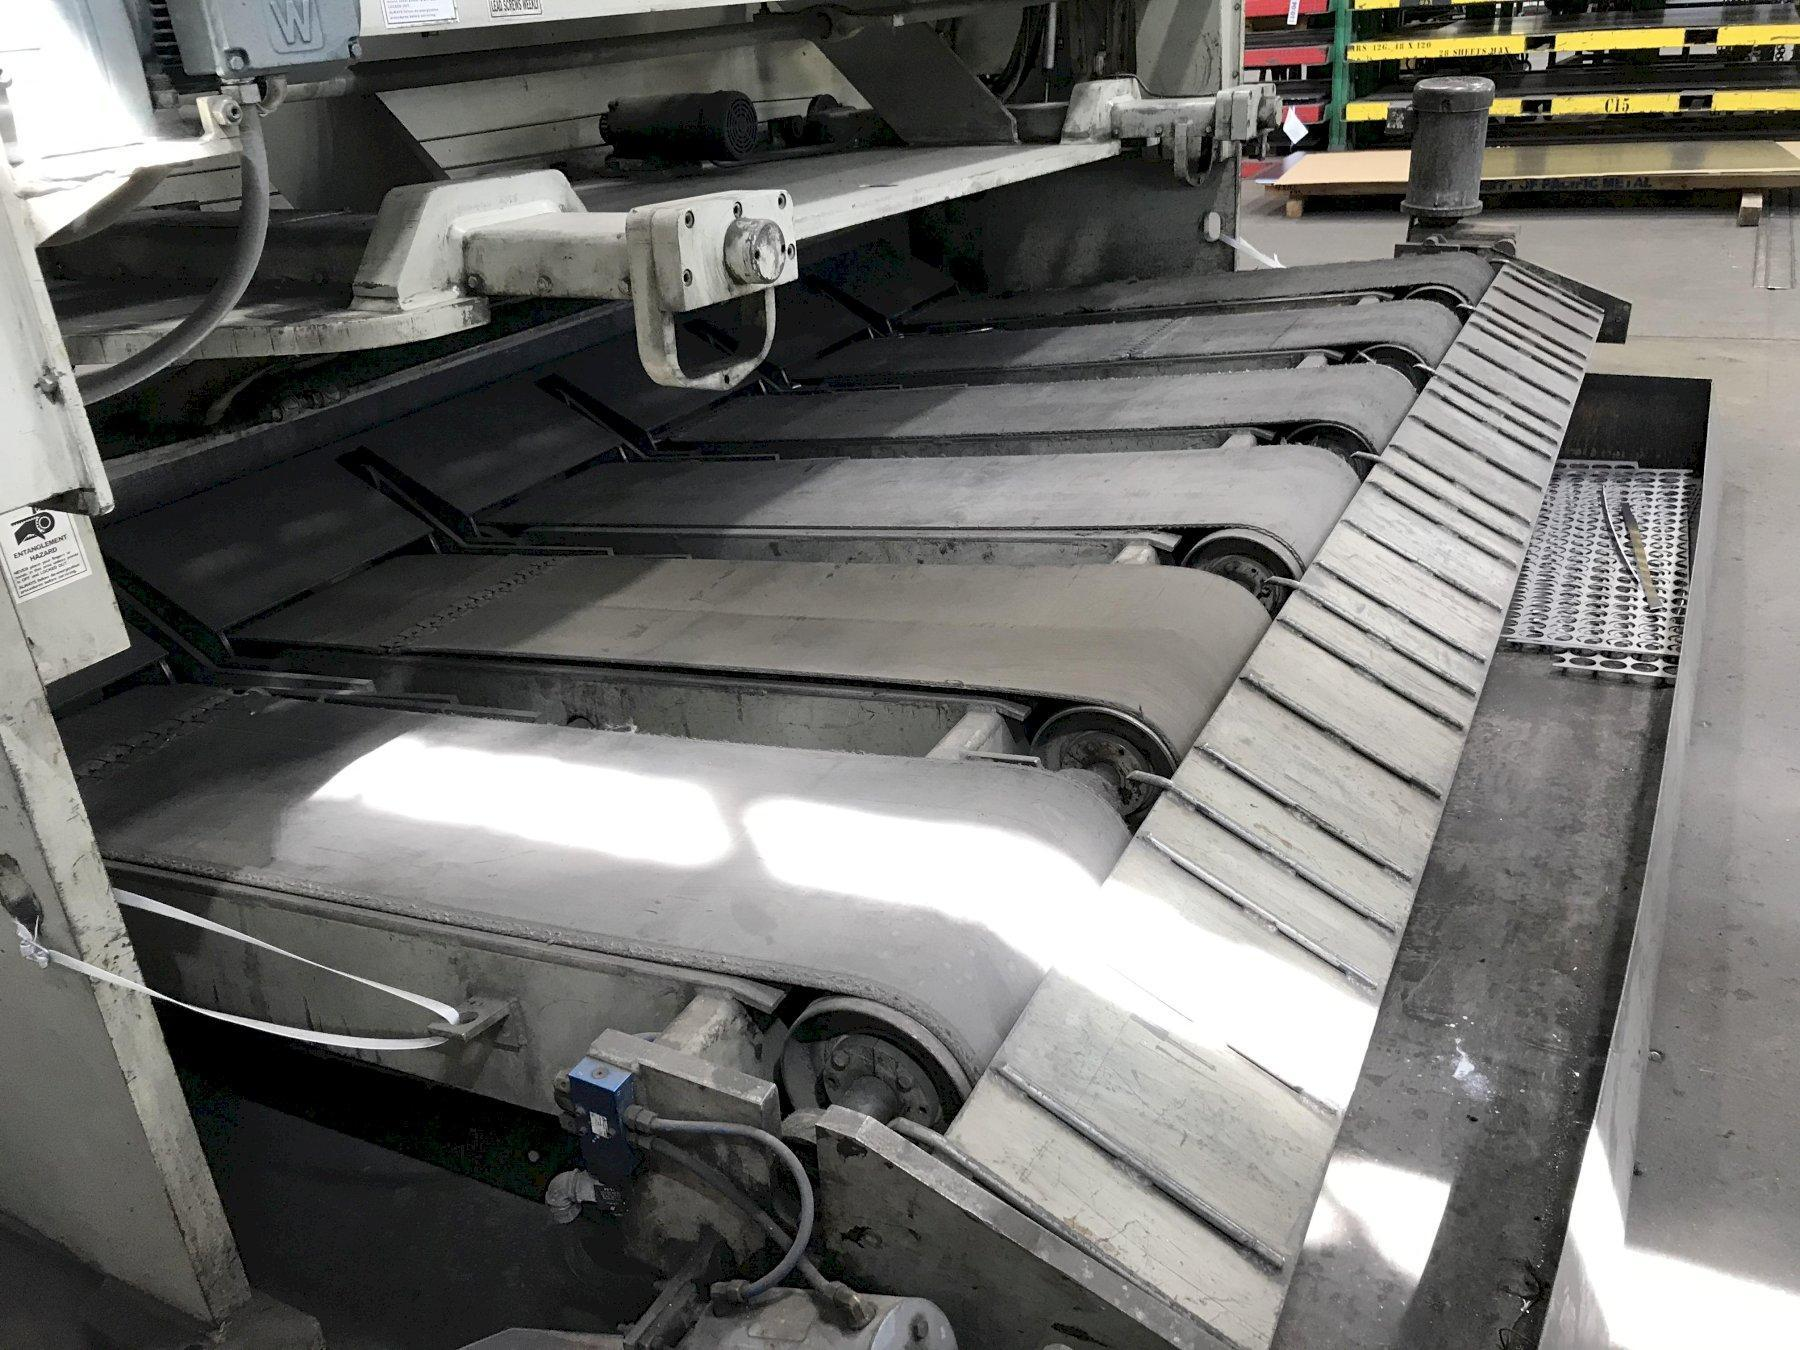 """1/2"""" X 12' ACCURSHEAR, MODEL 850012, NEW 2001, FRONT AND REAR GAUGING, EXIT CONVEYOR"""